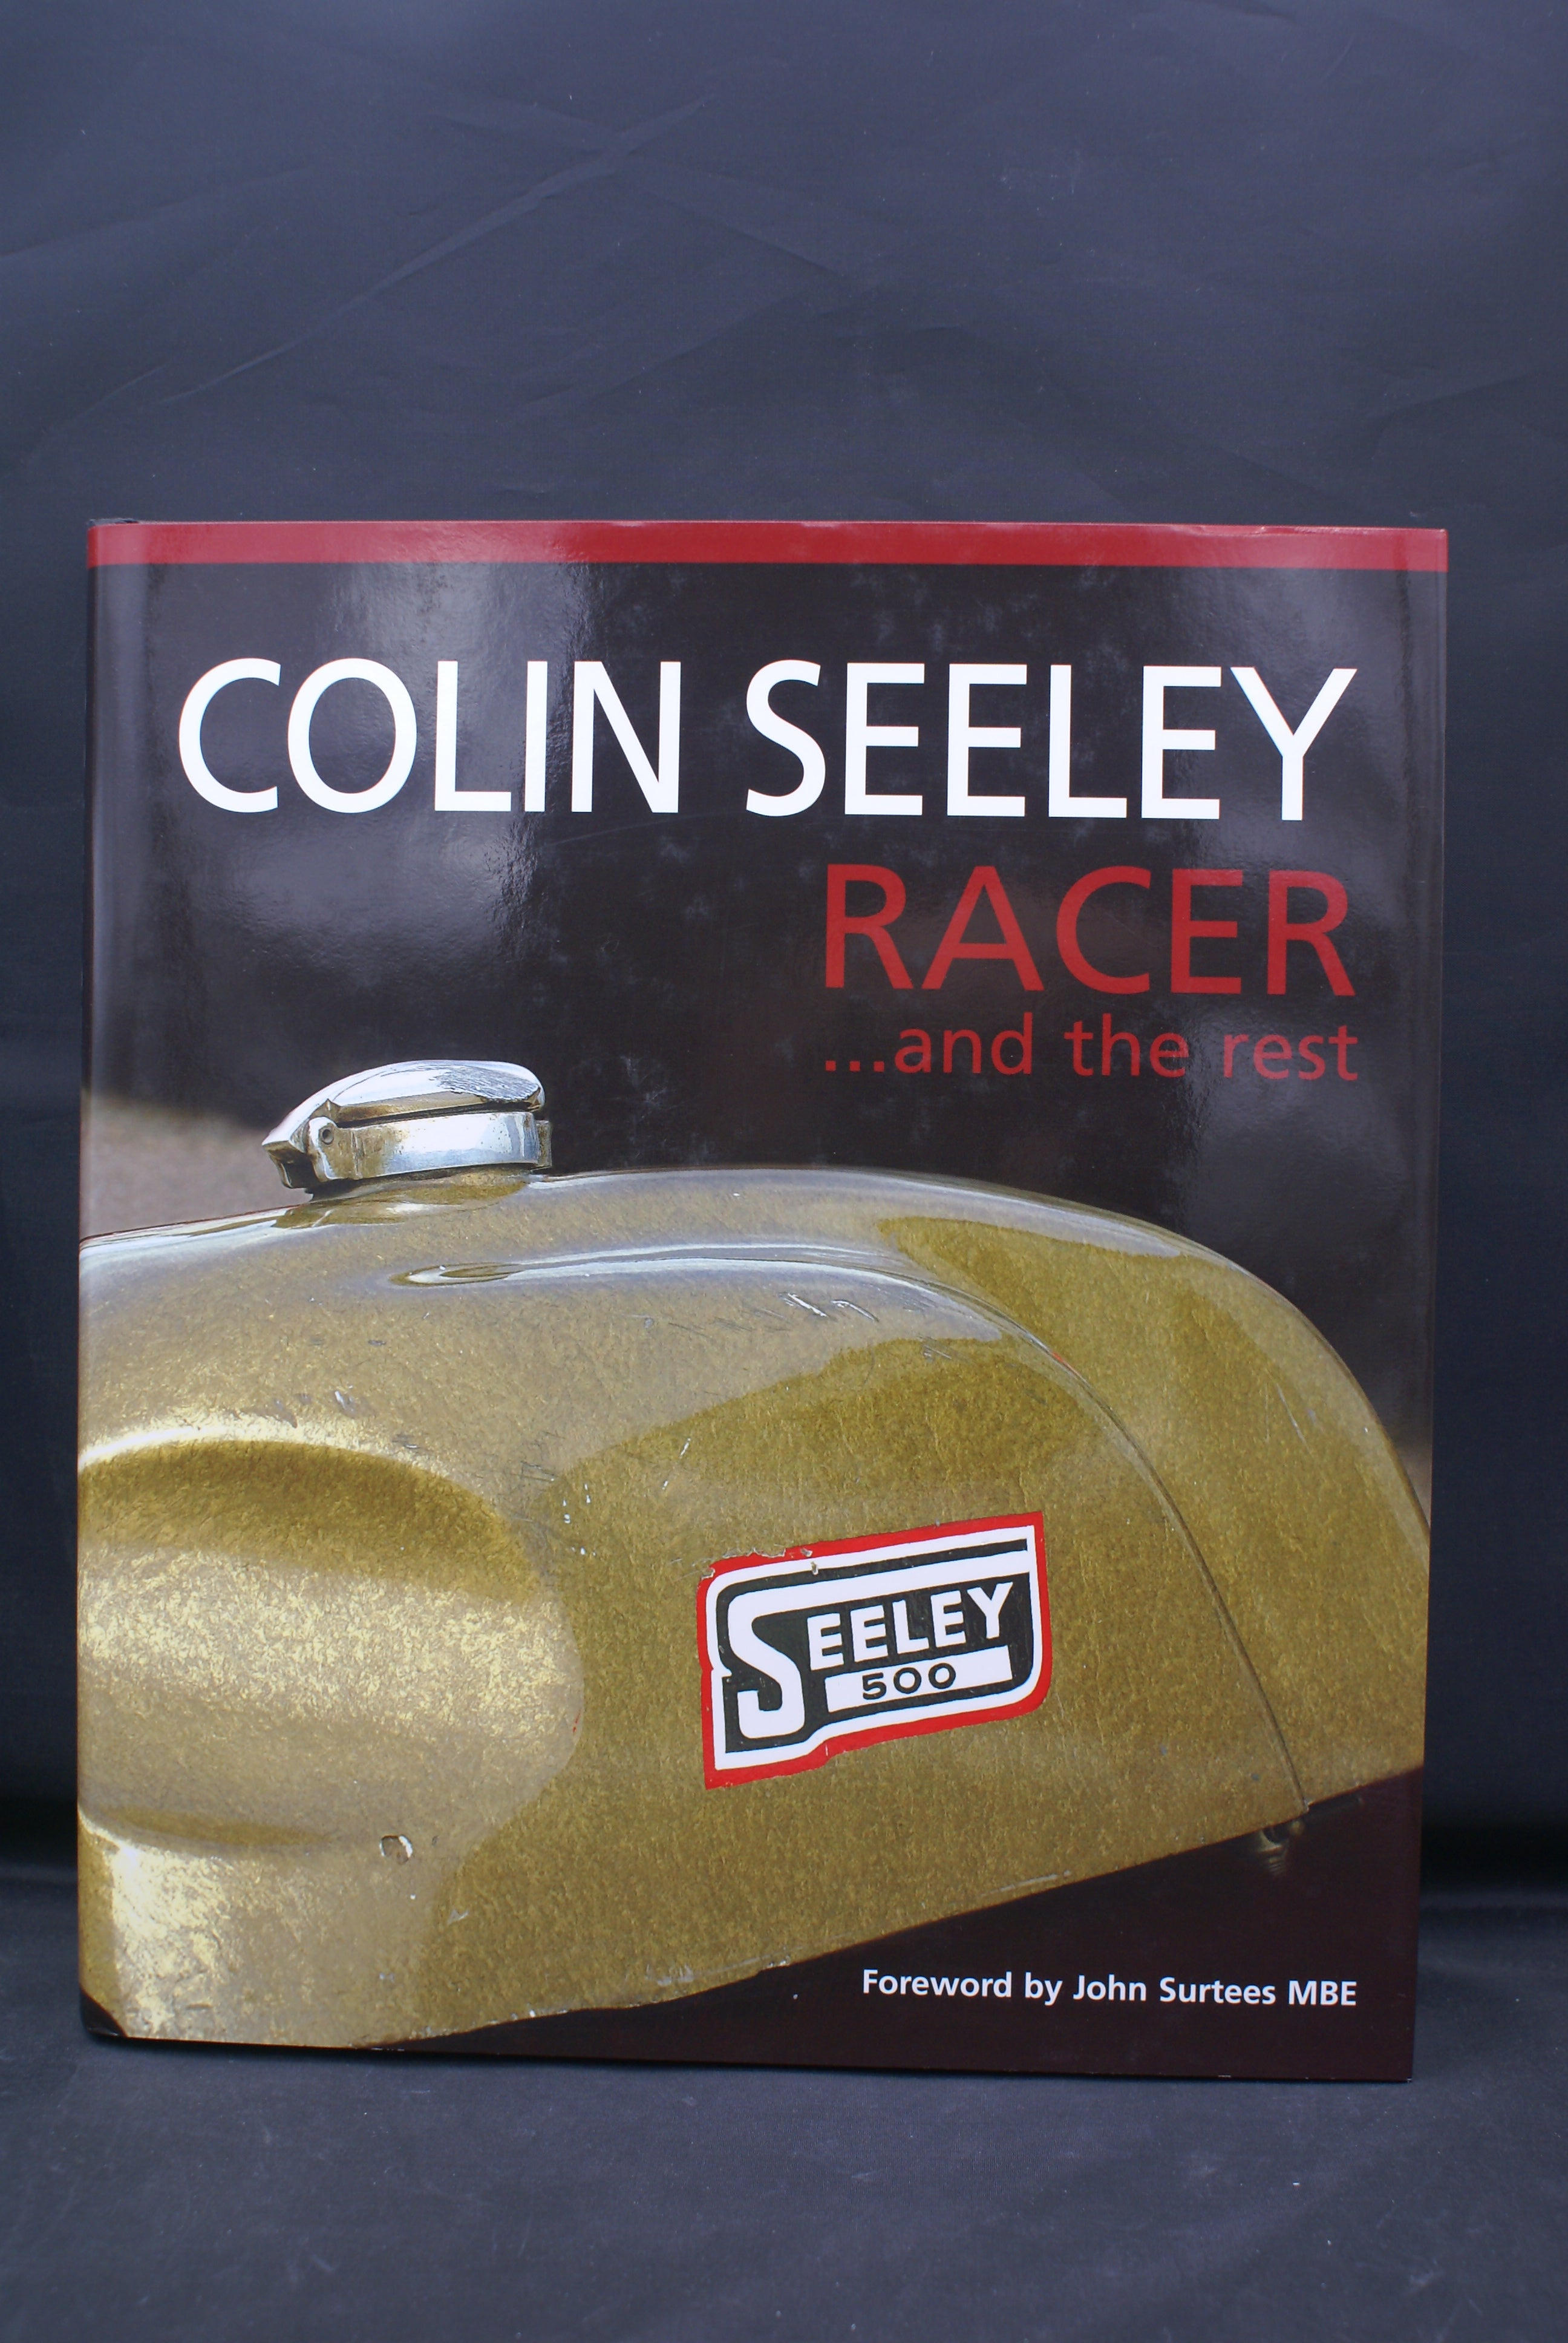 Colin Seeley, Racer....and the rest